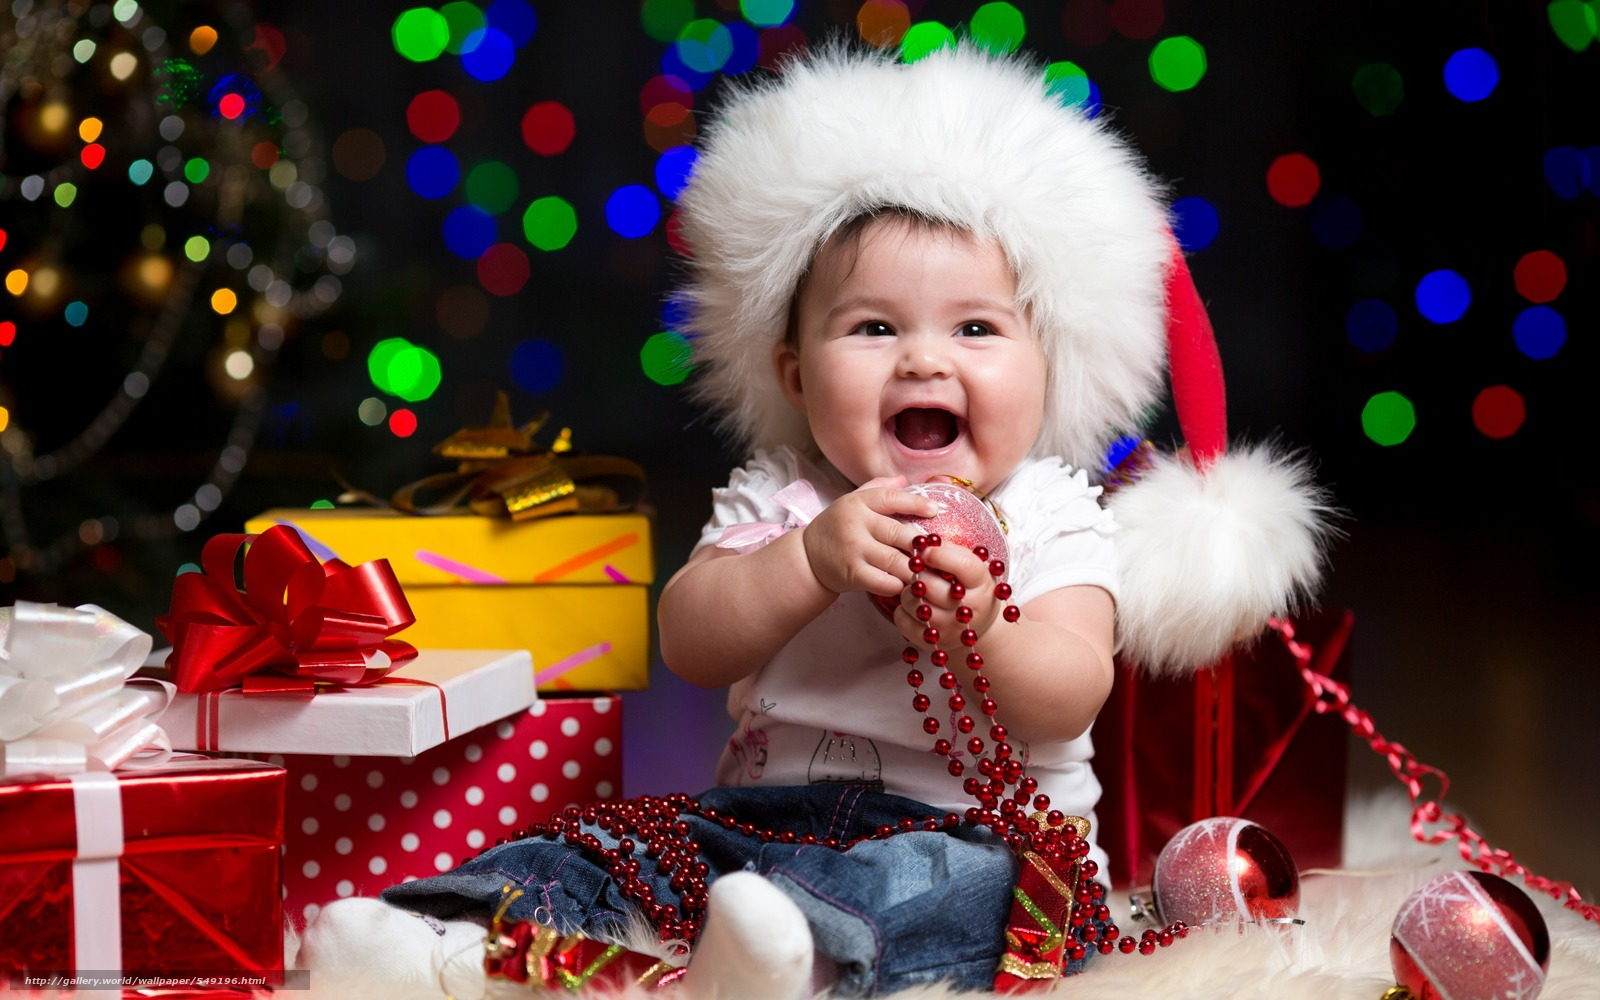 happy holidays merry christmas new yearkid baby - Merry Christmas Baby